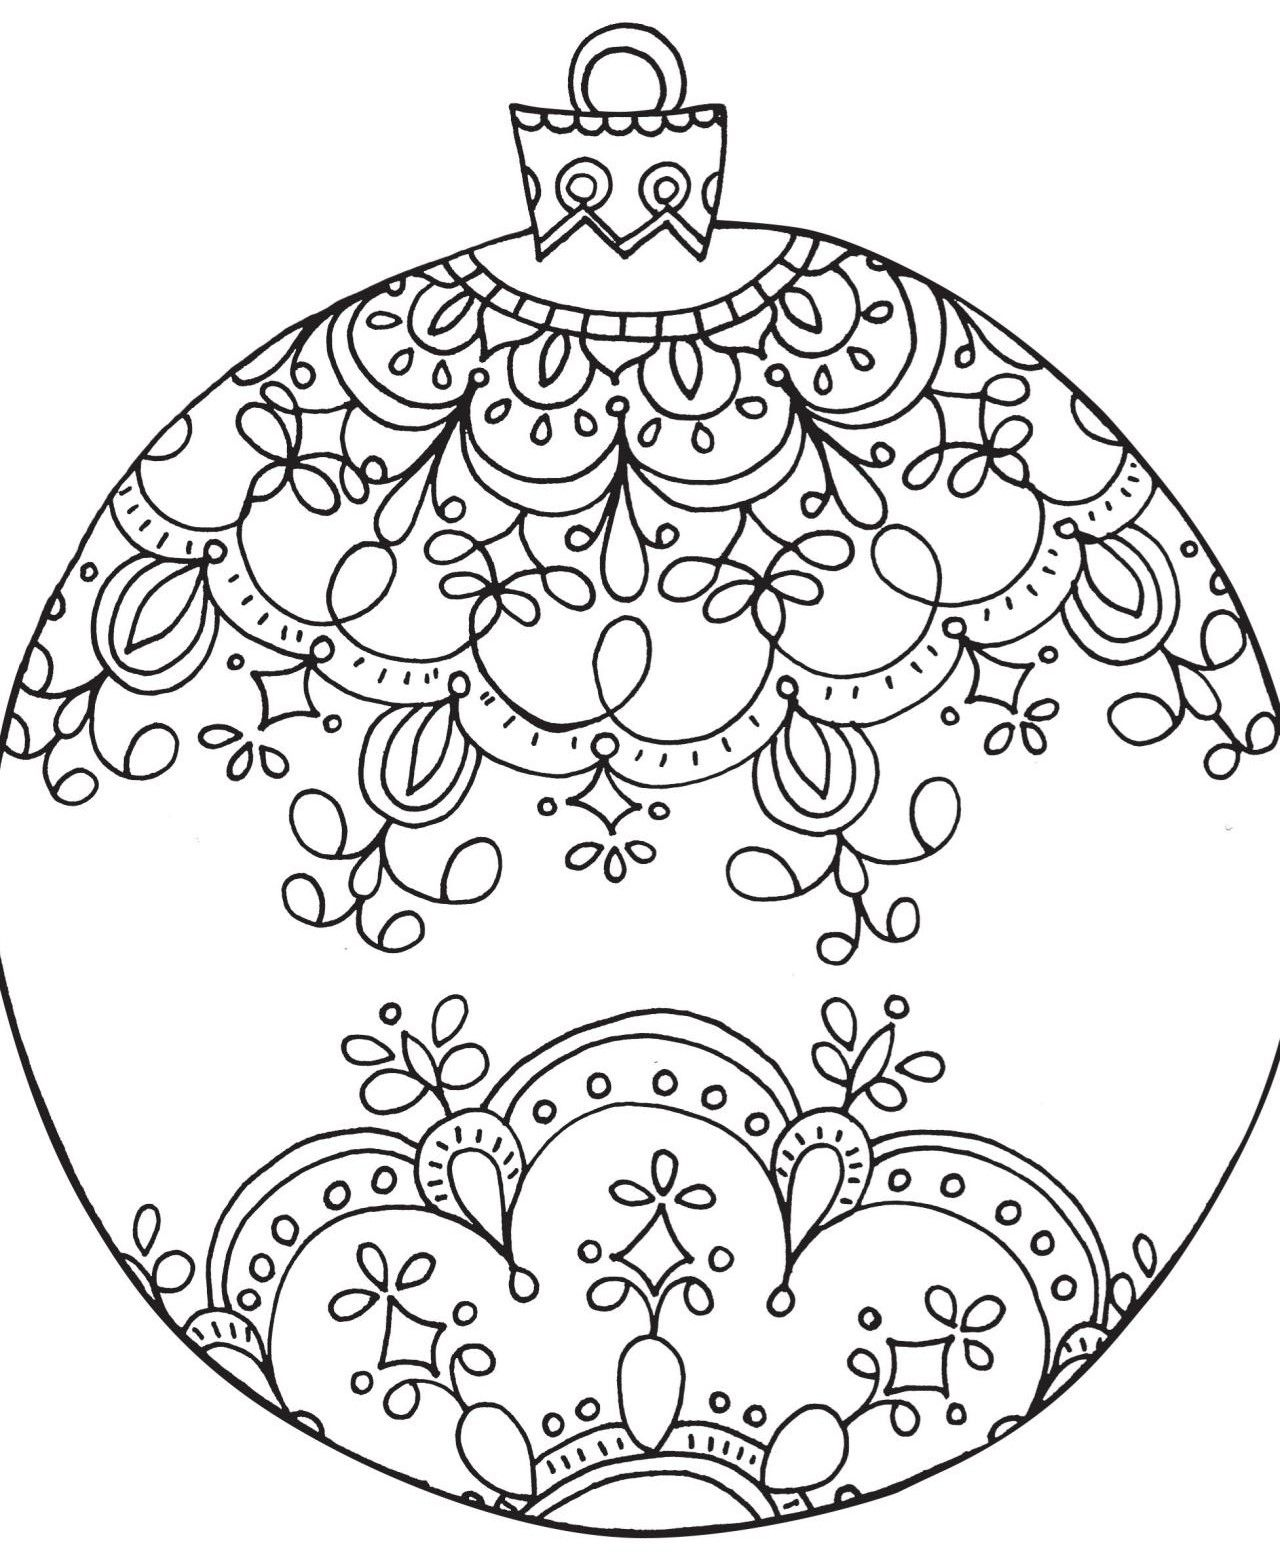 Pin de Melissa Latimer en Coloring Pages | Pinterest